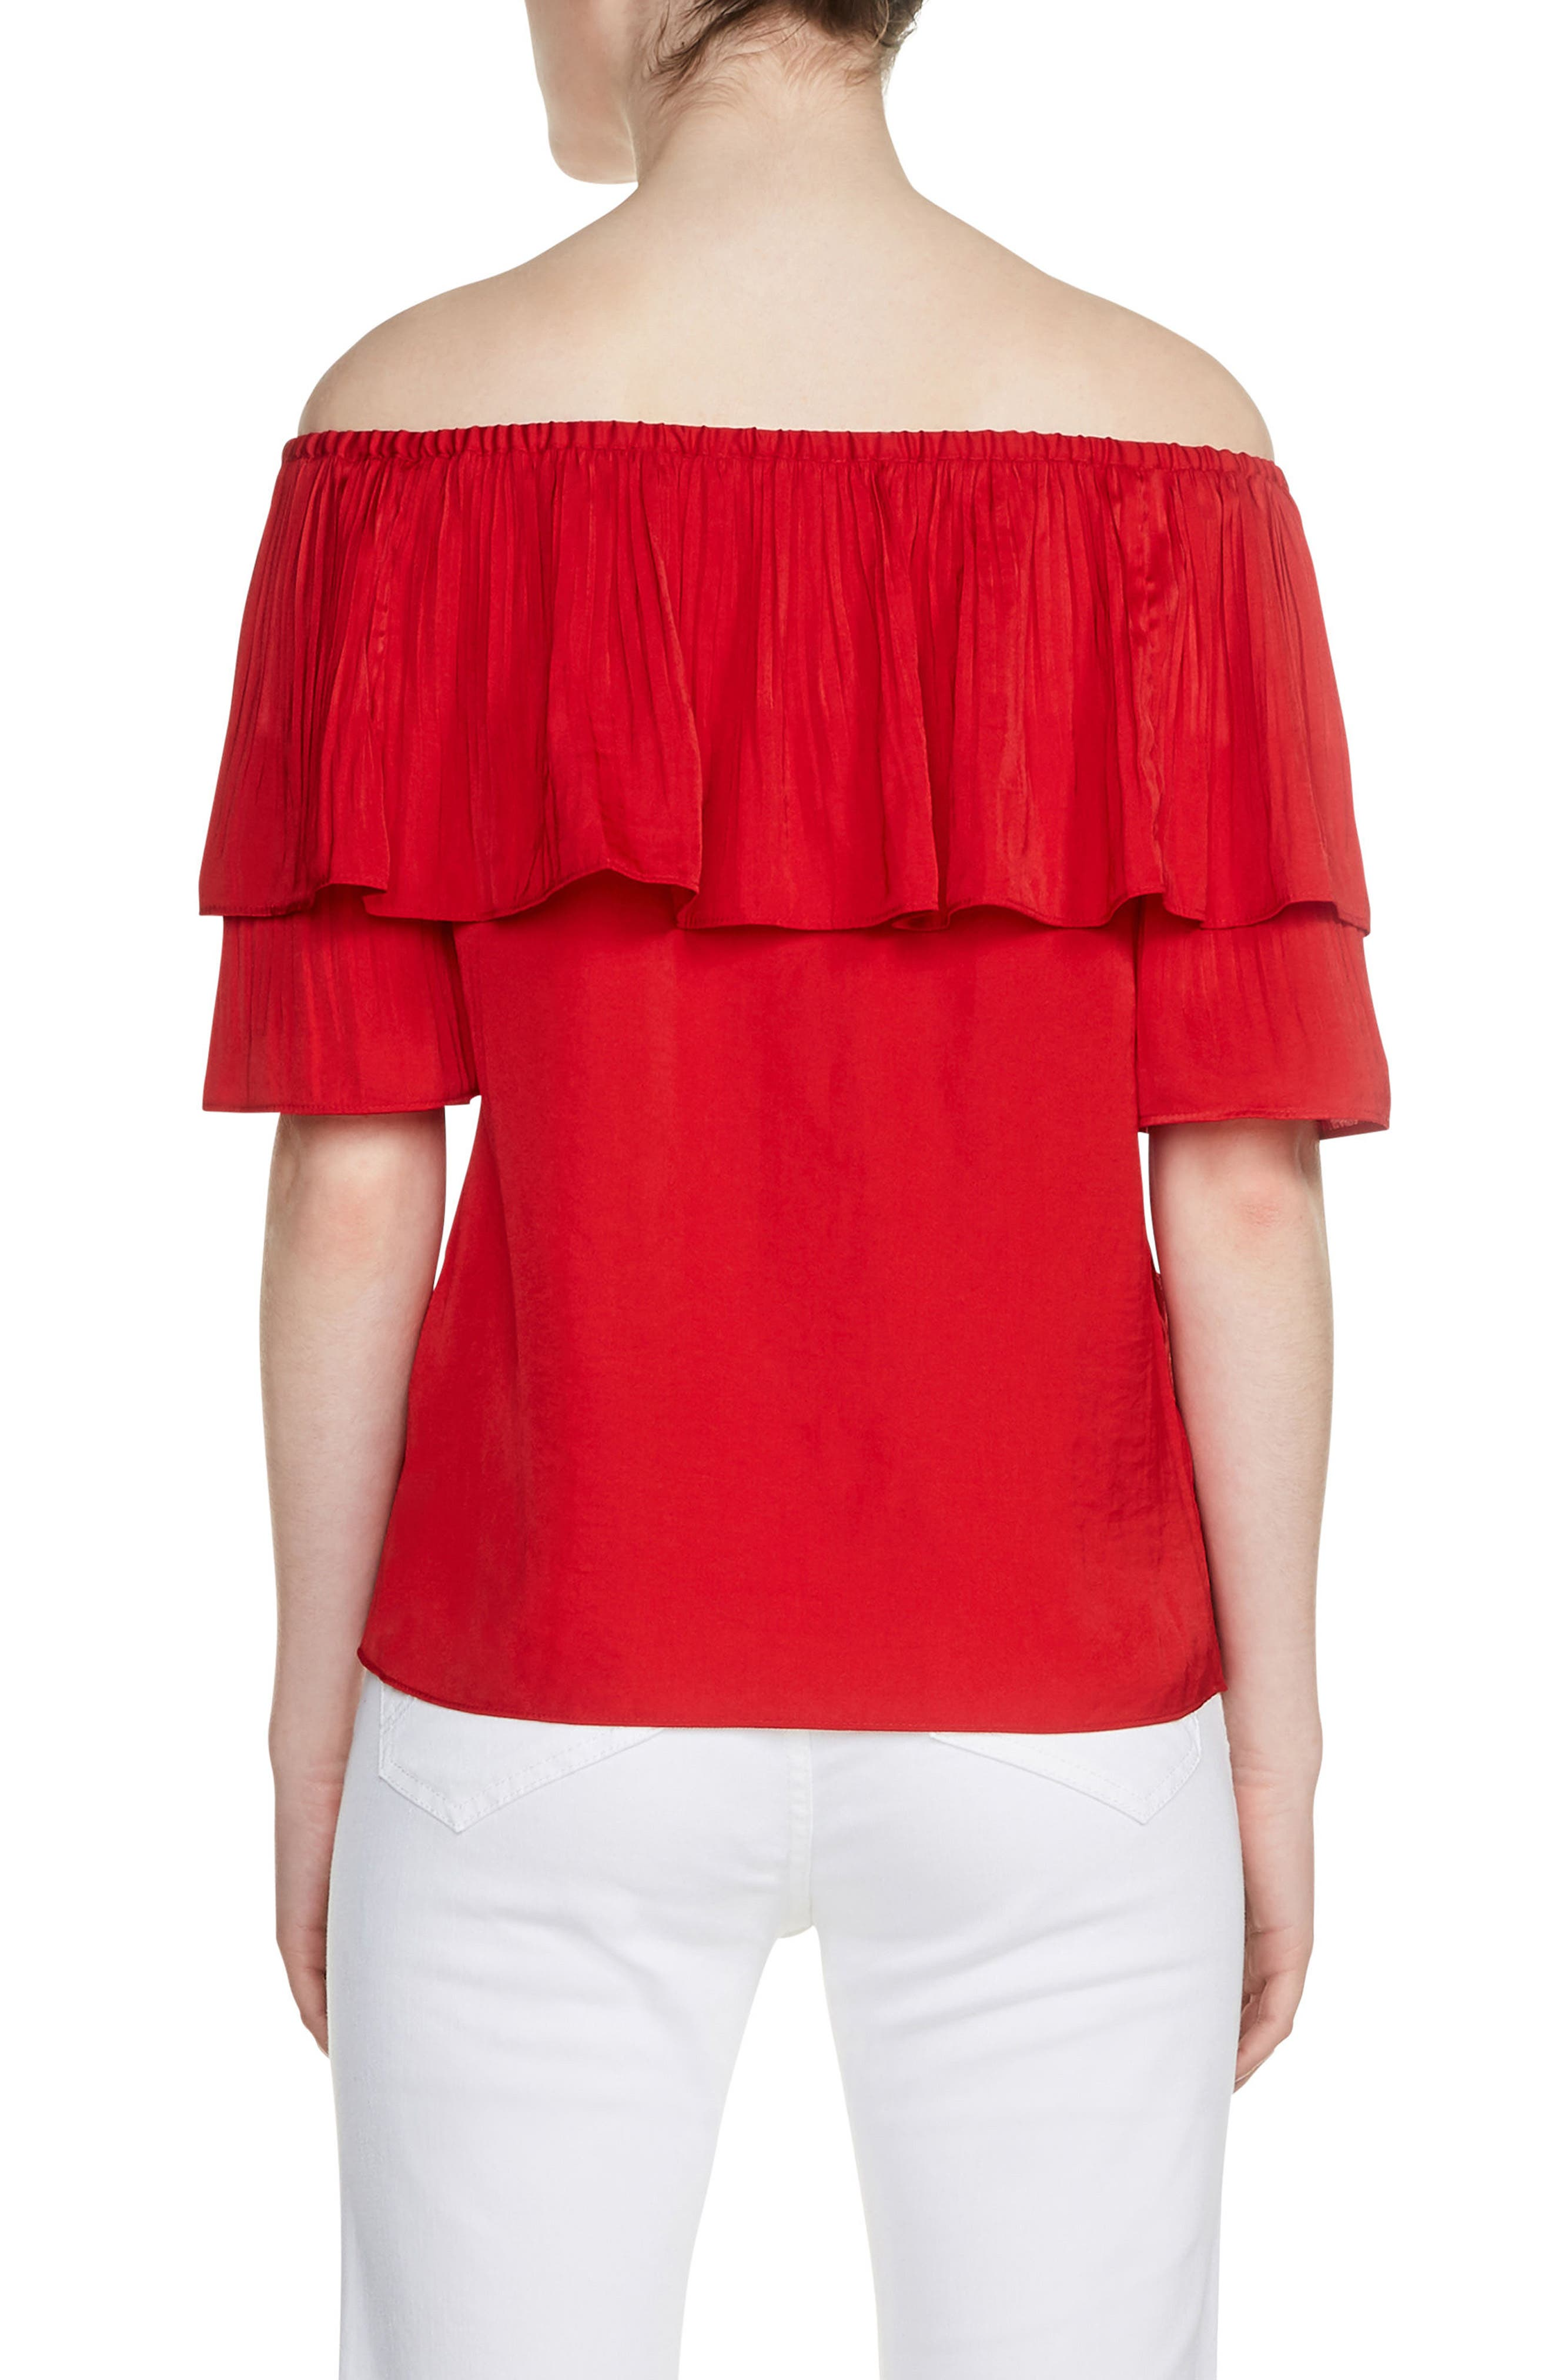 Locao Off the Shoulder Top,                             Alternate thumbnail 2, color,                             600